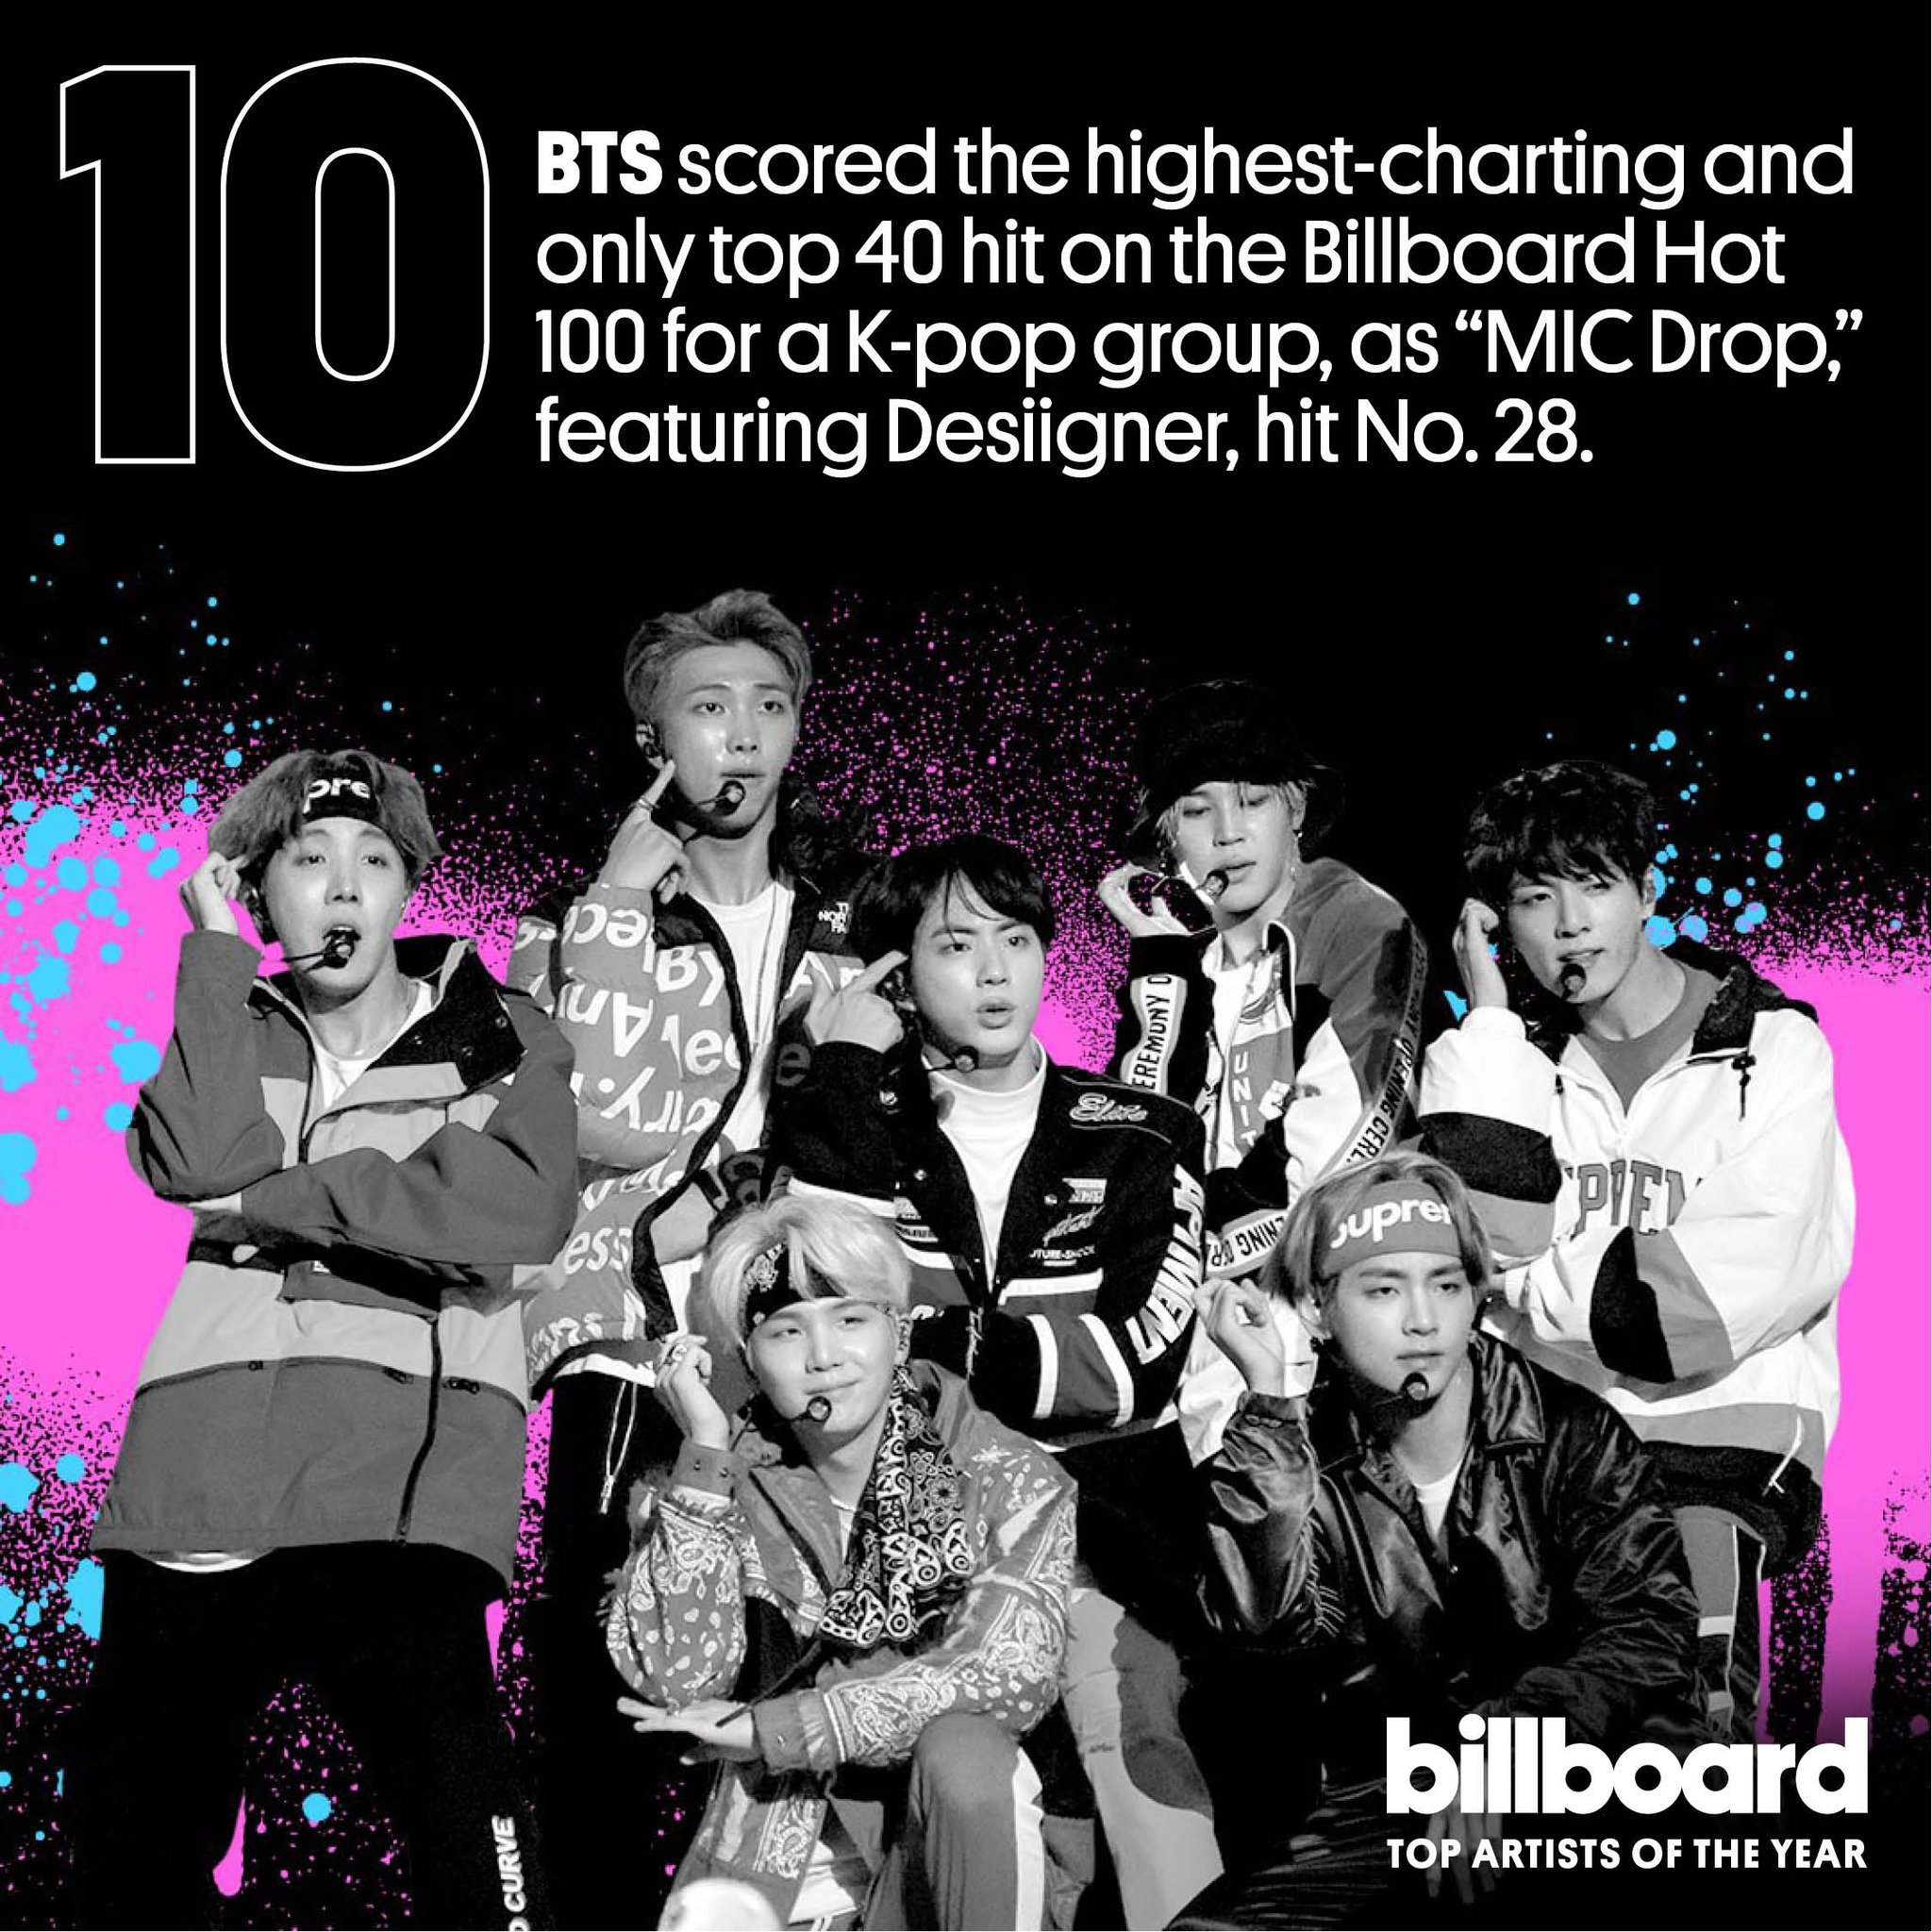 .@BTS_twt are No. 10 on our top artist of the year list! #YearInMusic https://t.co/I41ahZi0UE https://t.co/qi6DWuqEEu